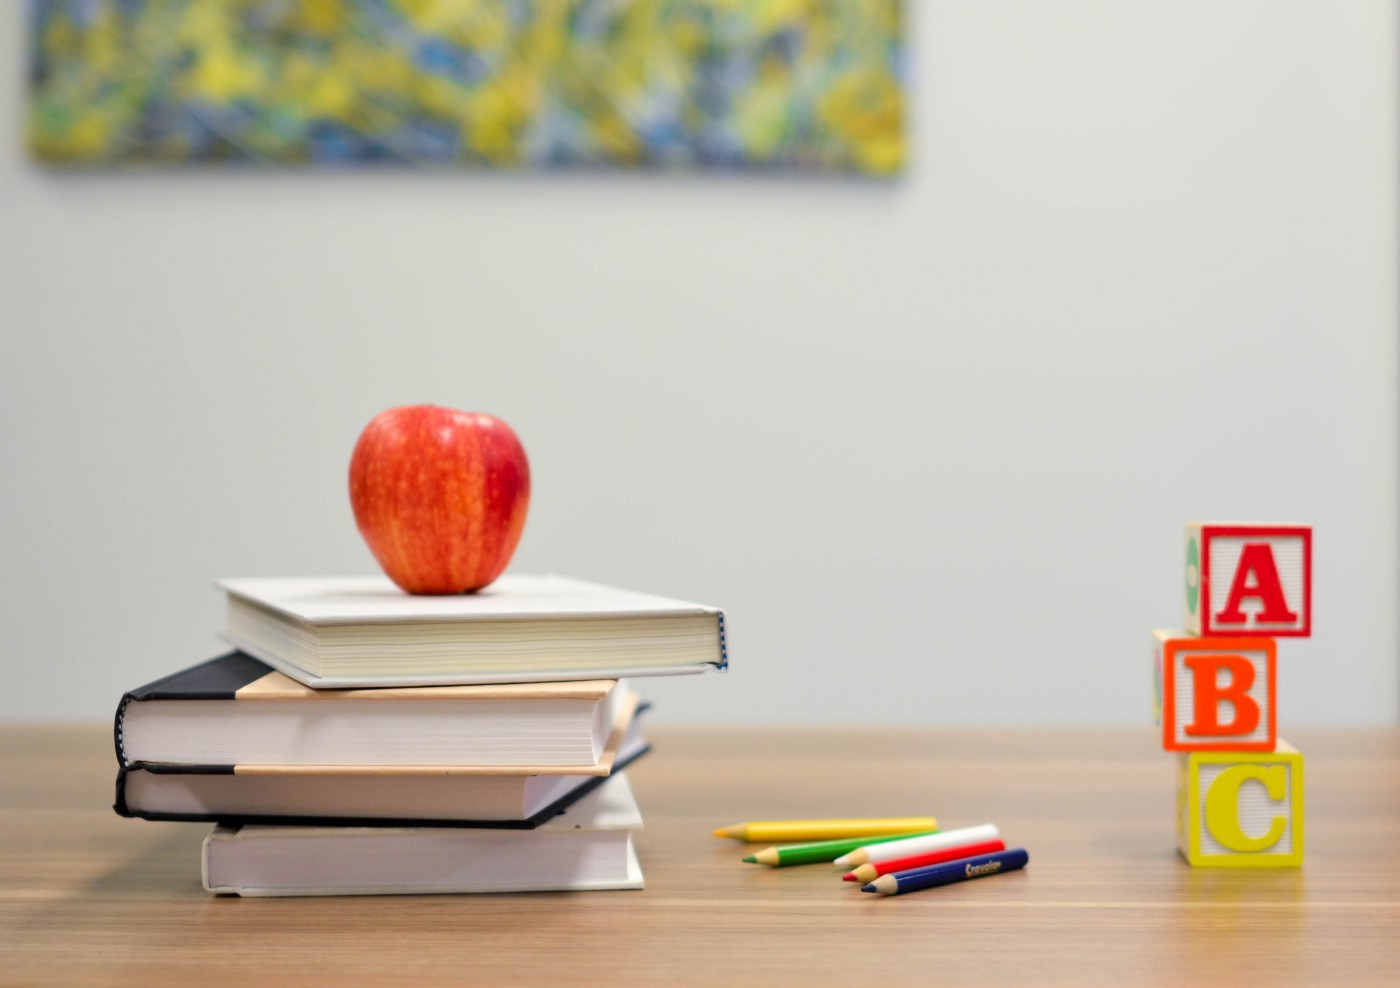 A pile of books with a red apple on top. Next to it is a row of coloured pencils. Next to the pencils is a set of ABC blocks.